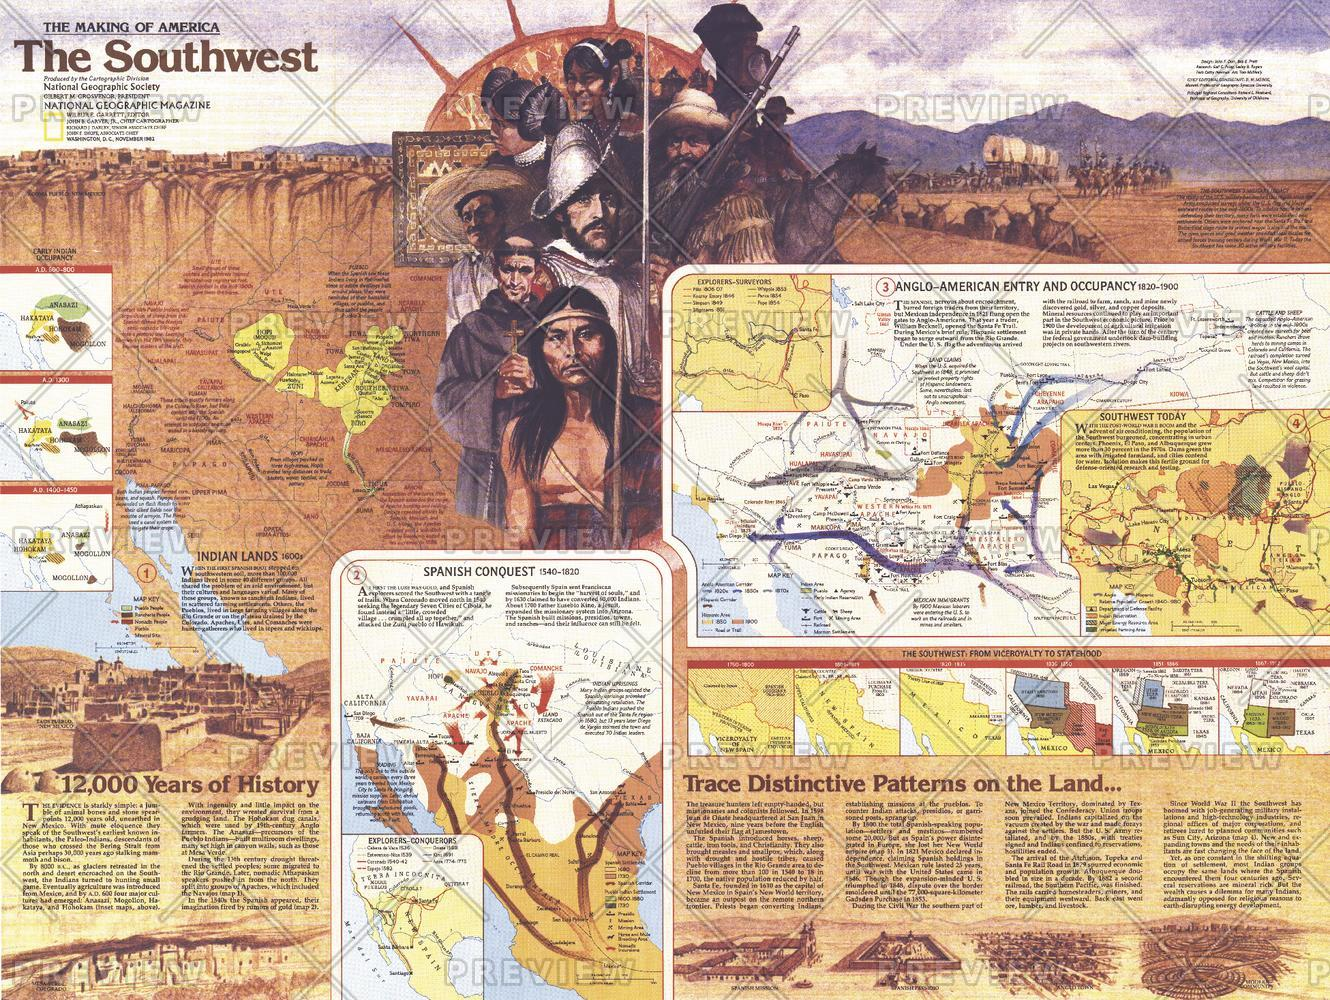 Southwest   Side 2 - Published 1982